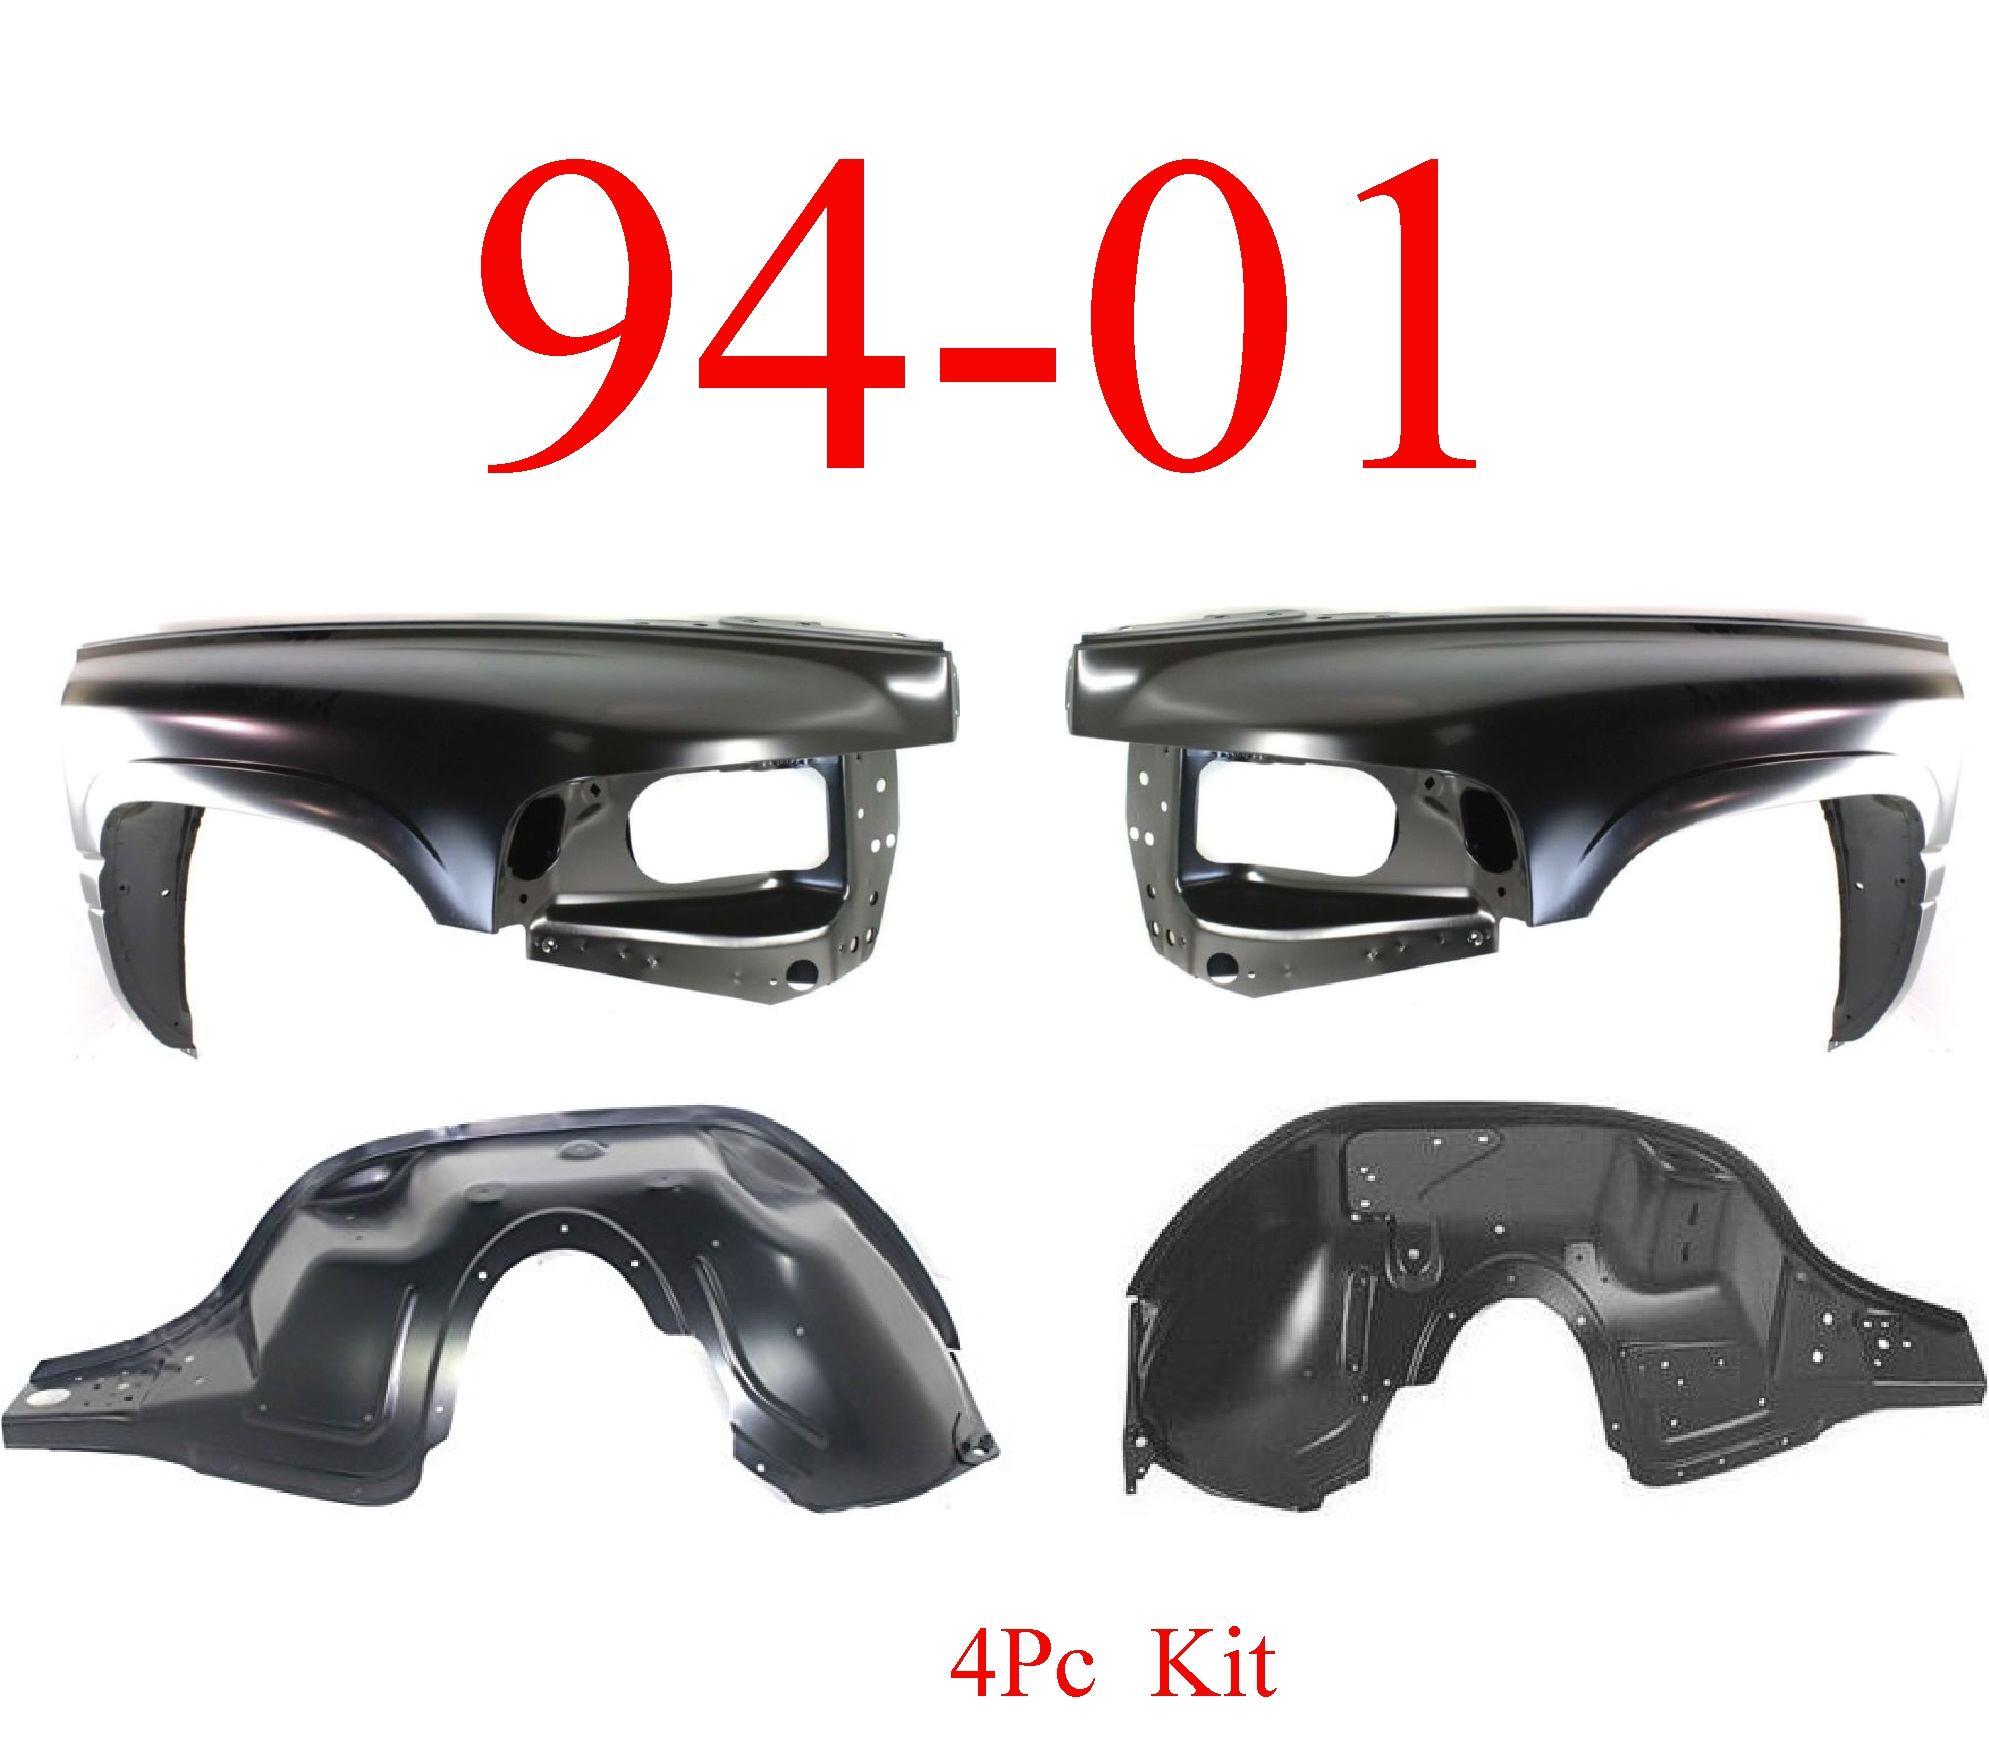 94-01 Dodge Ram 4Pc Inner & Outer Fender Assembly Kit